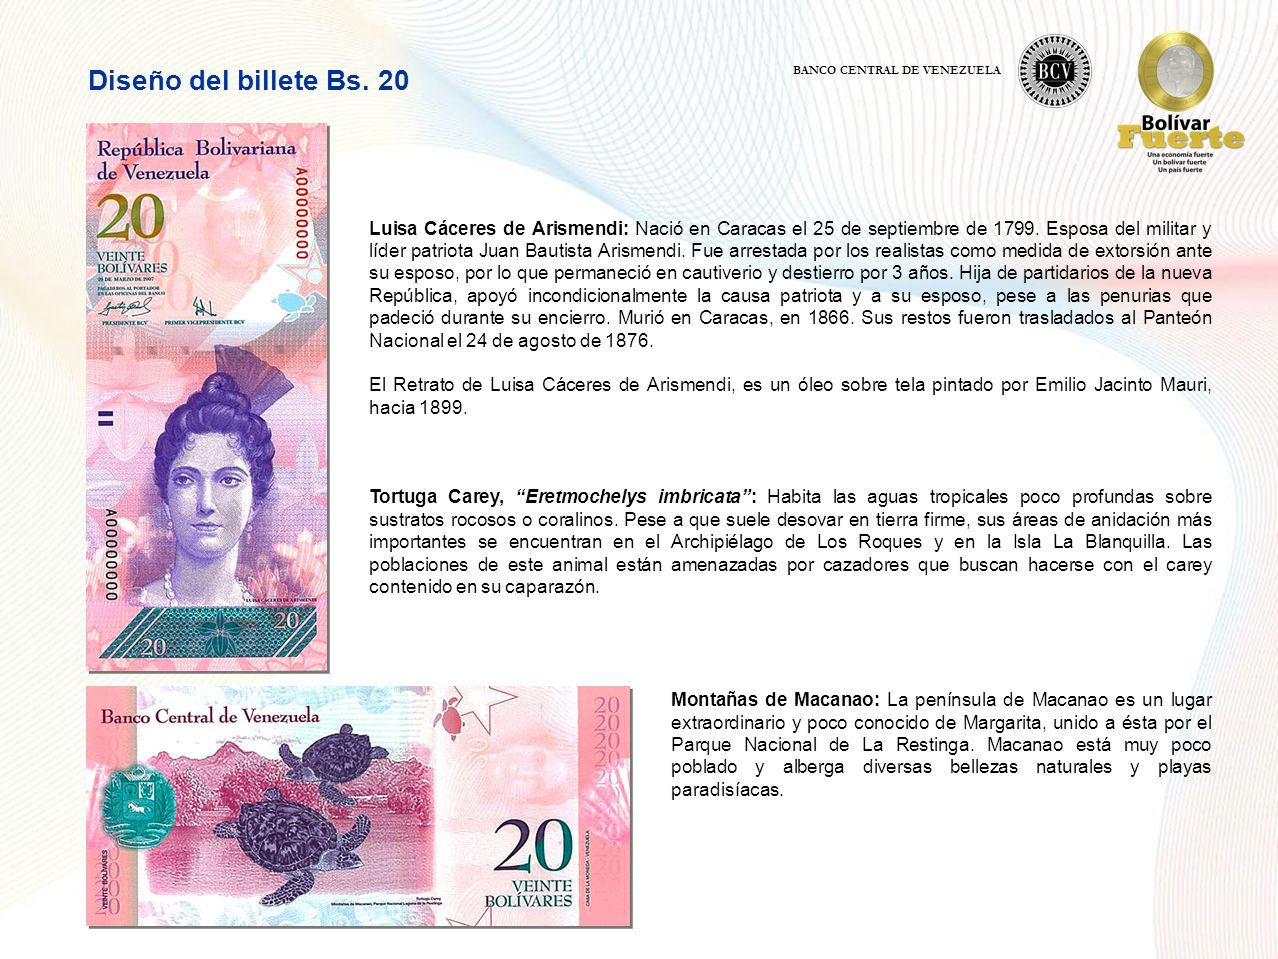 Diseño del billete Bs. 20 BANCO CENTRAL DE VENEZUELA.